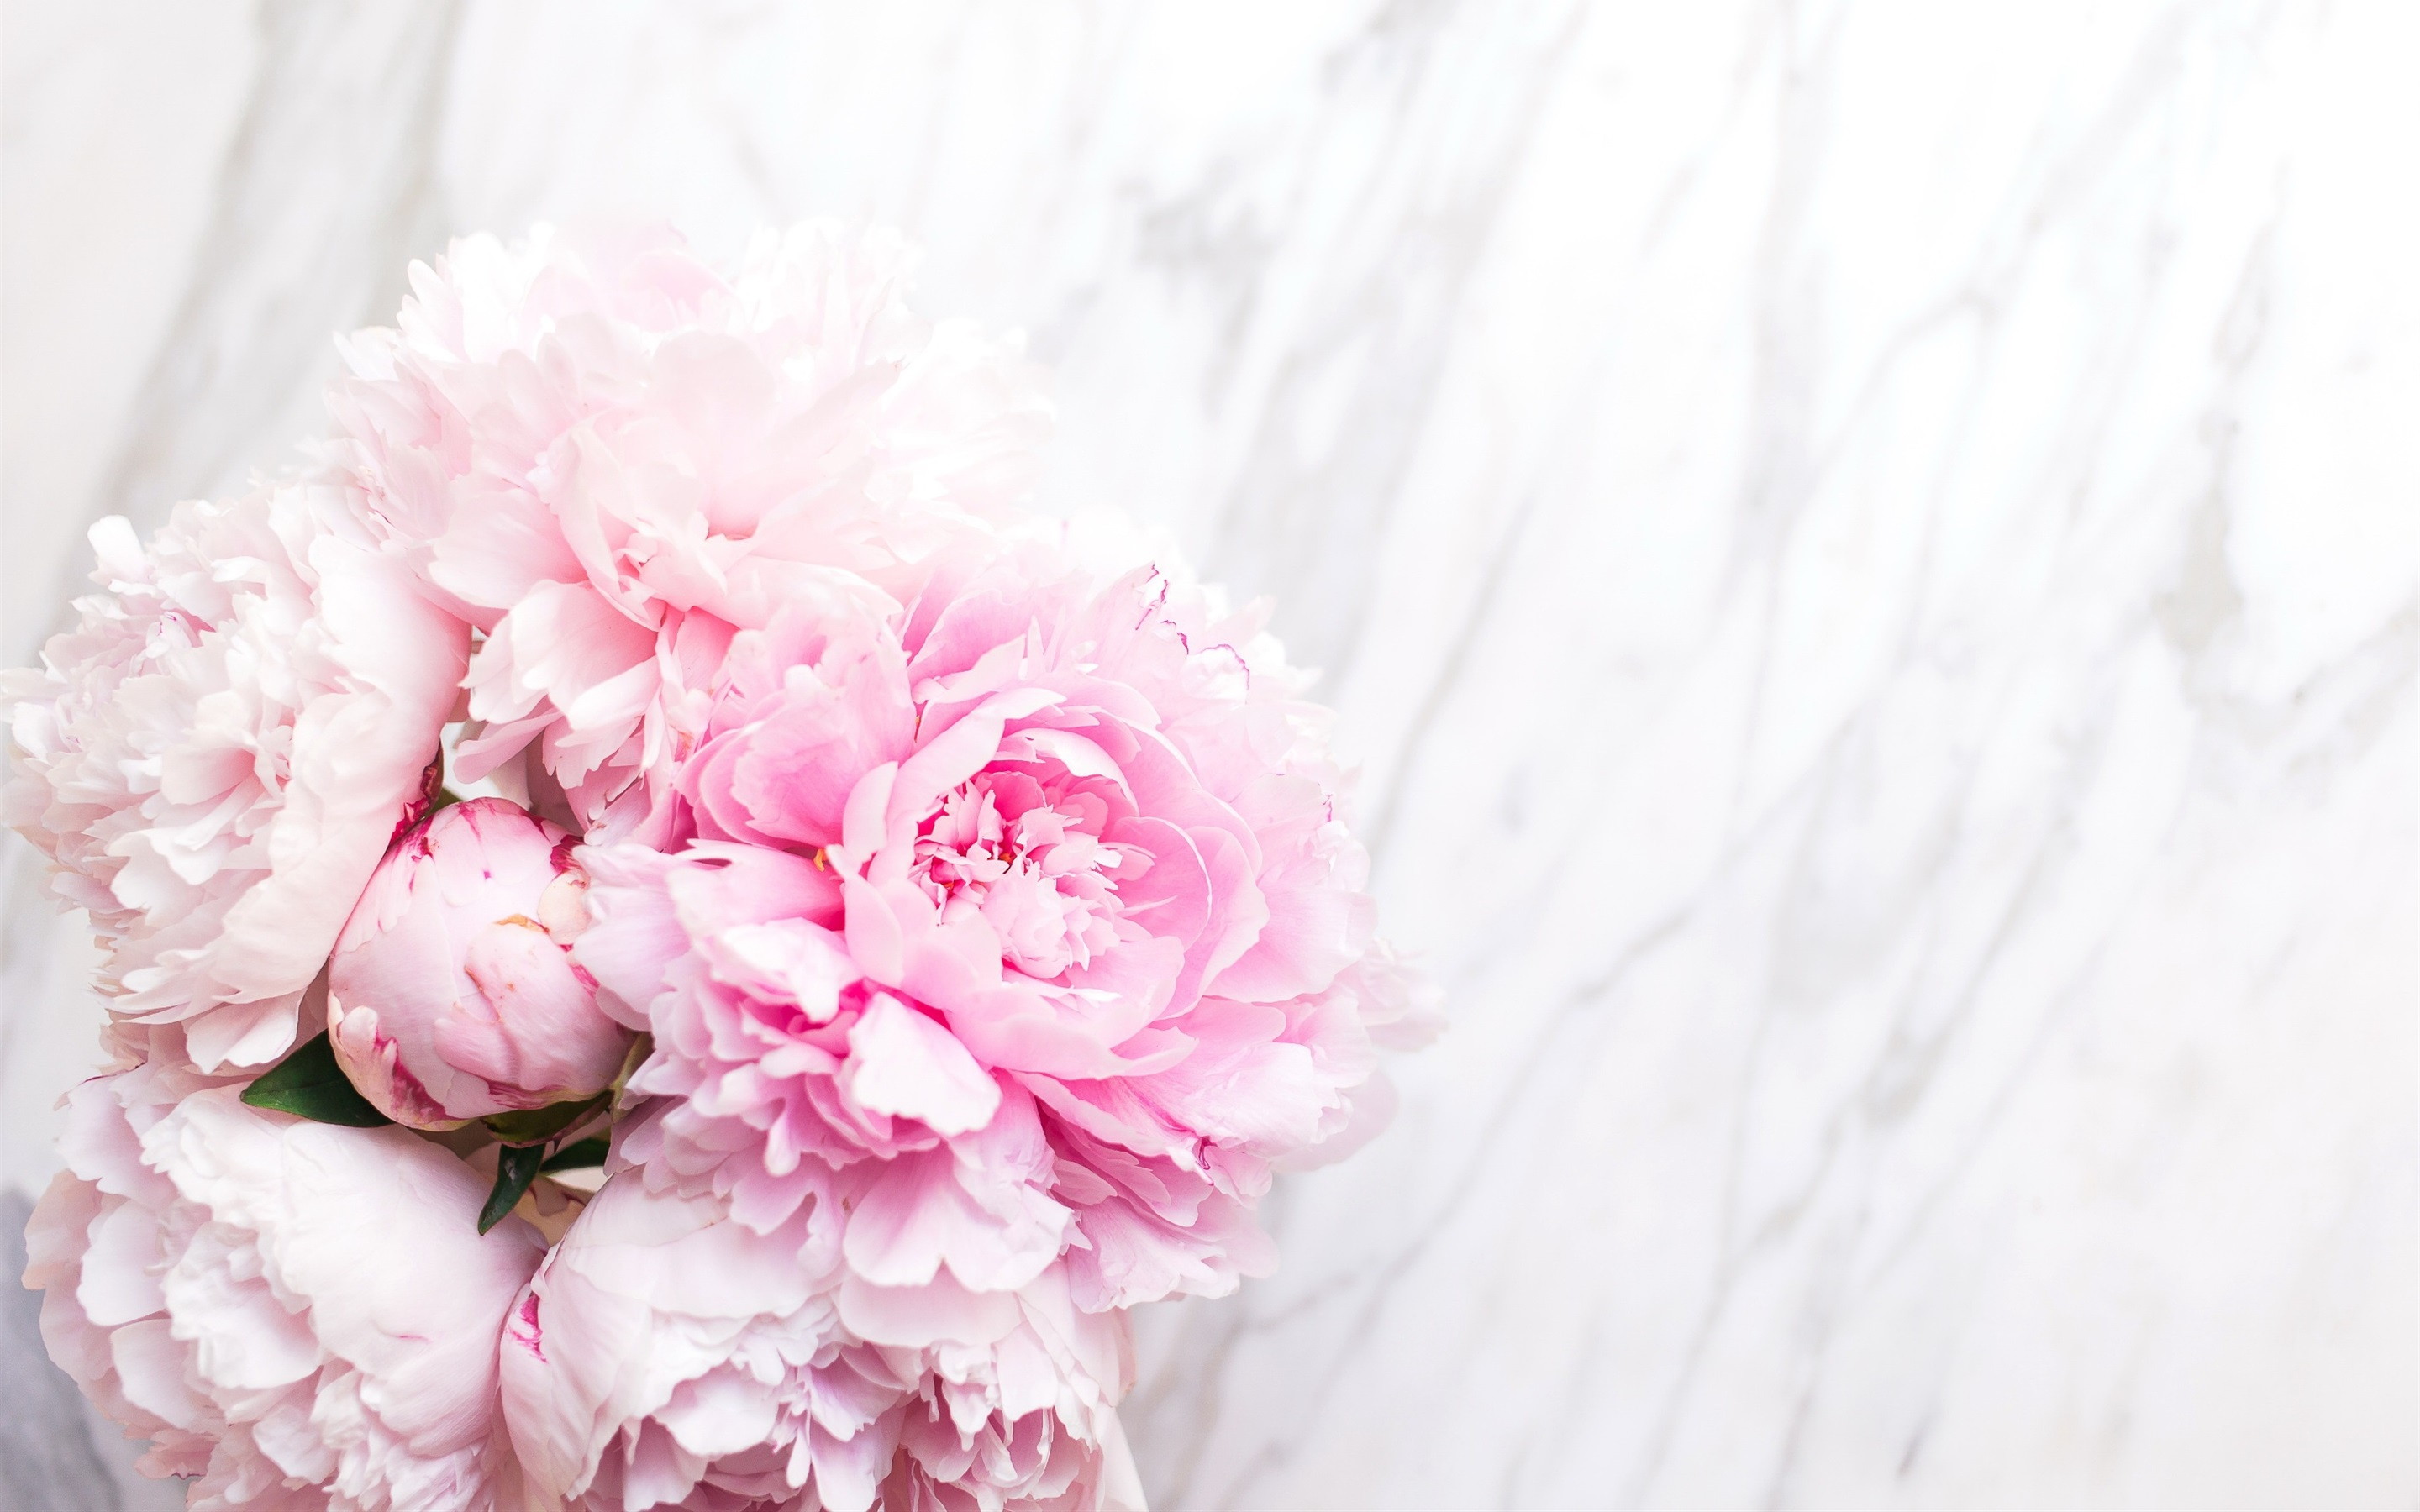 wallpaper pink peonies, tender 2880x1800 hd picture, image